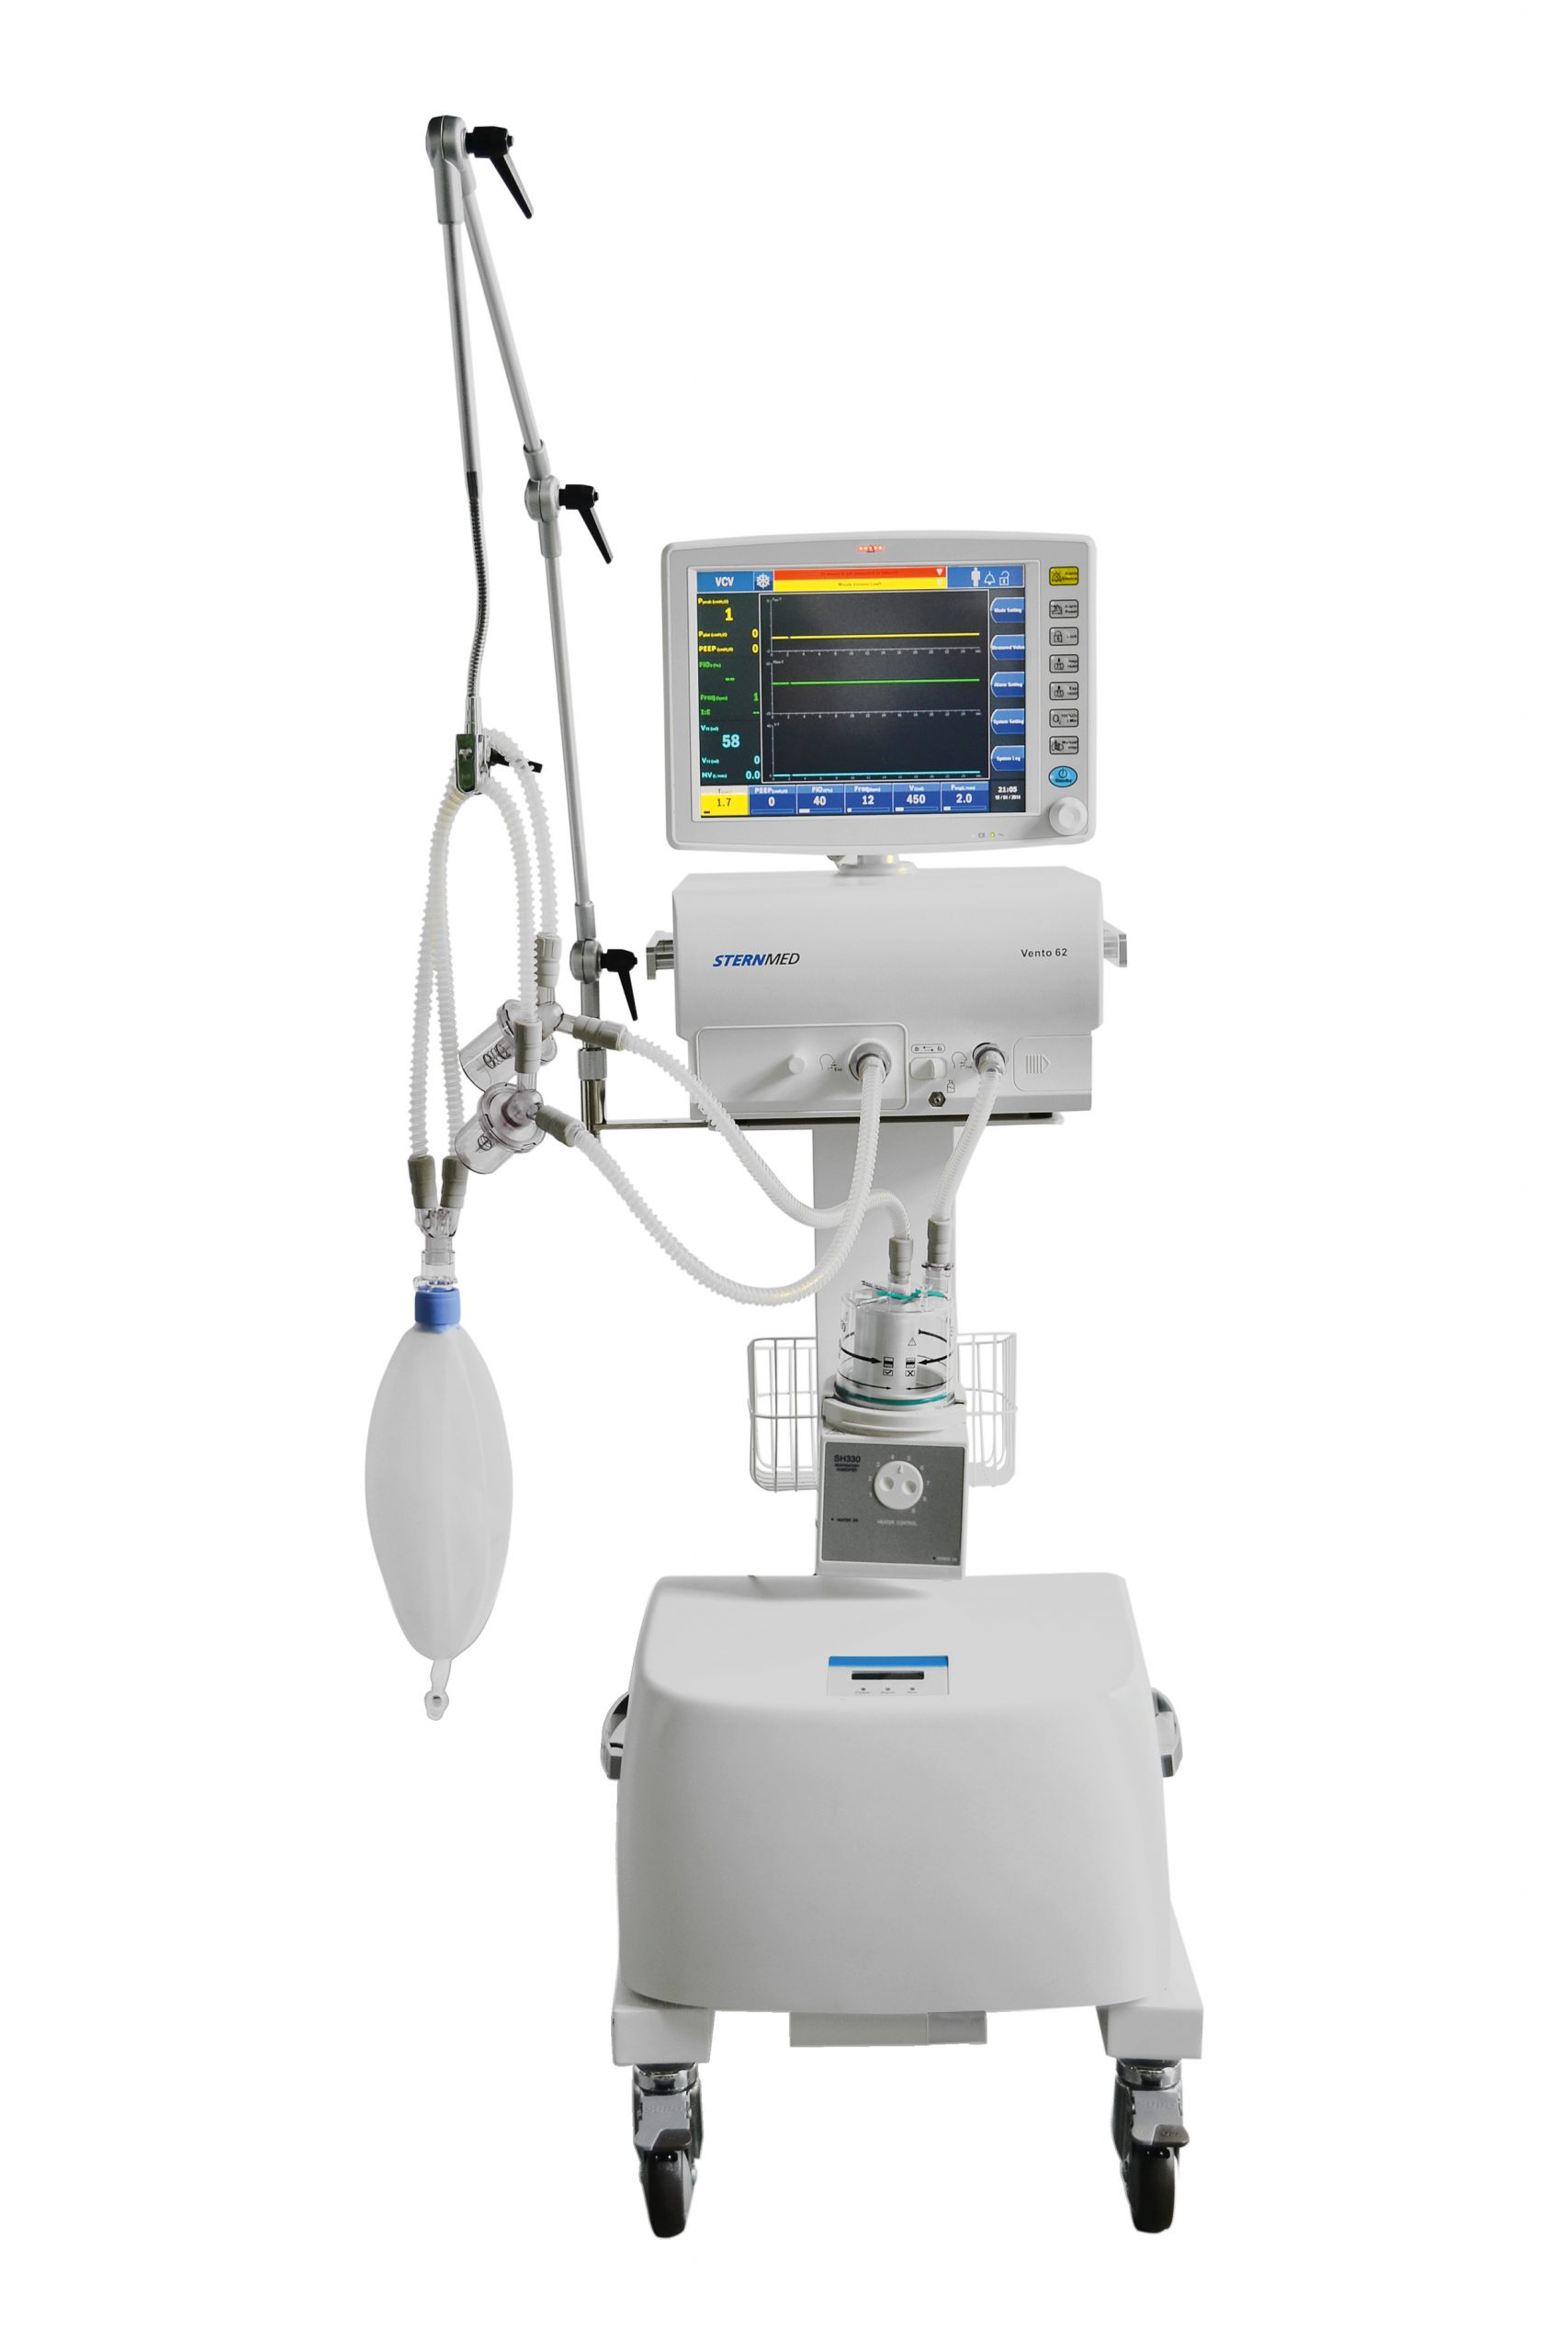 Solutions for operating rooms and patient care devices